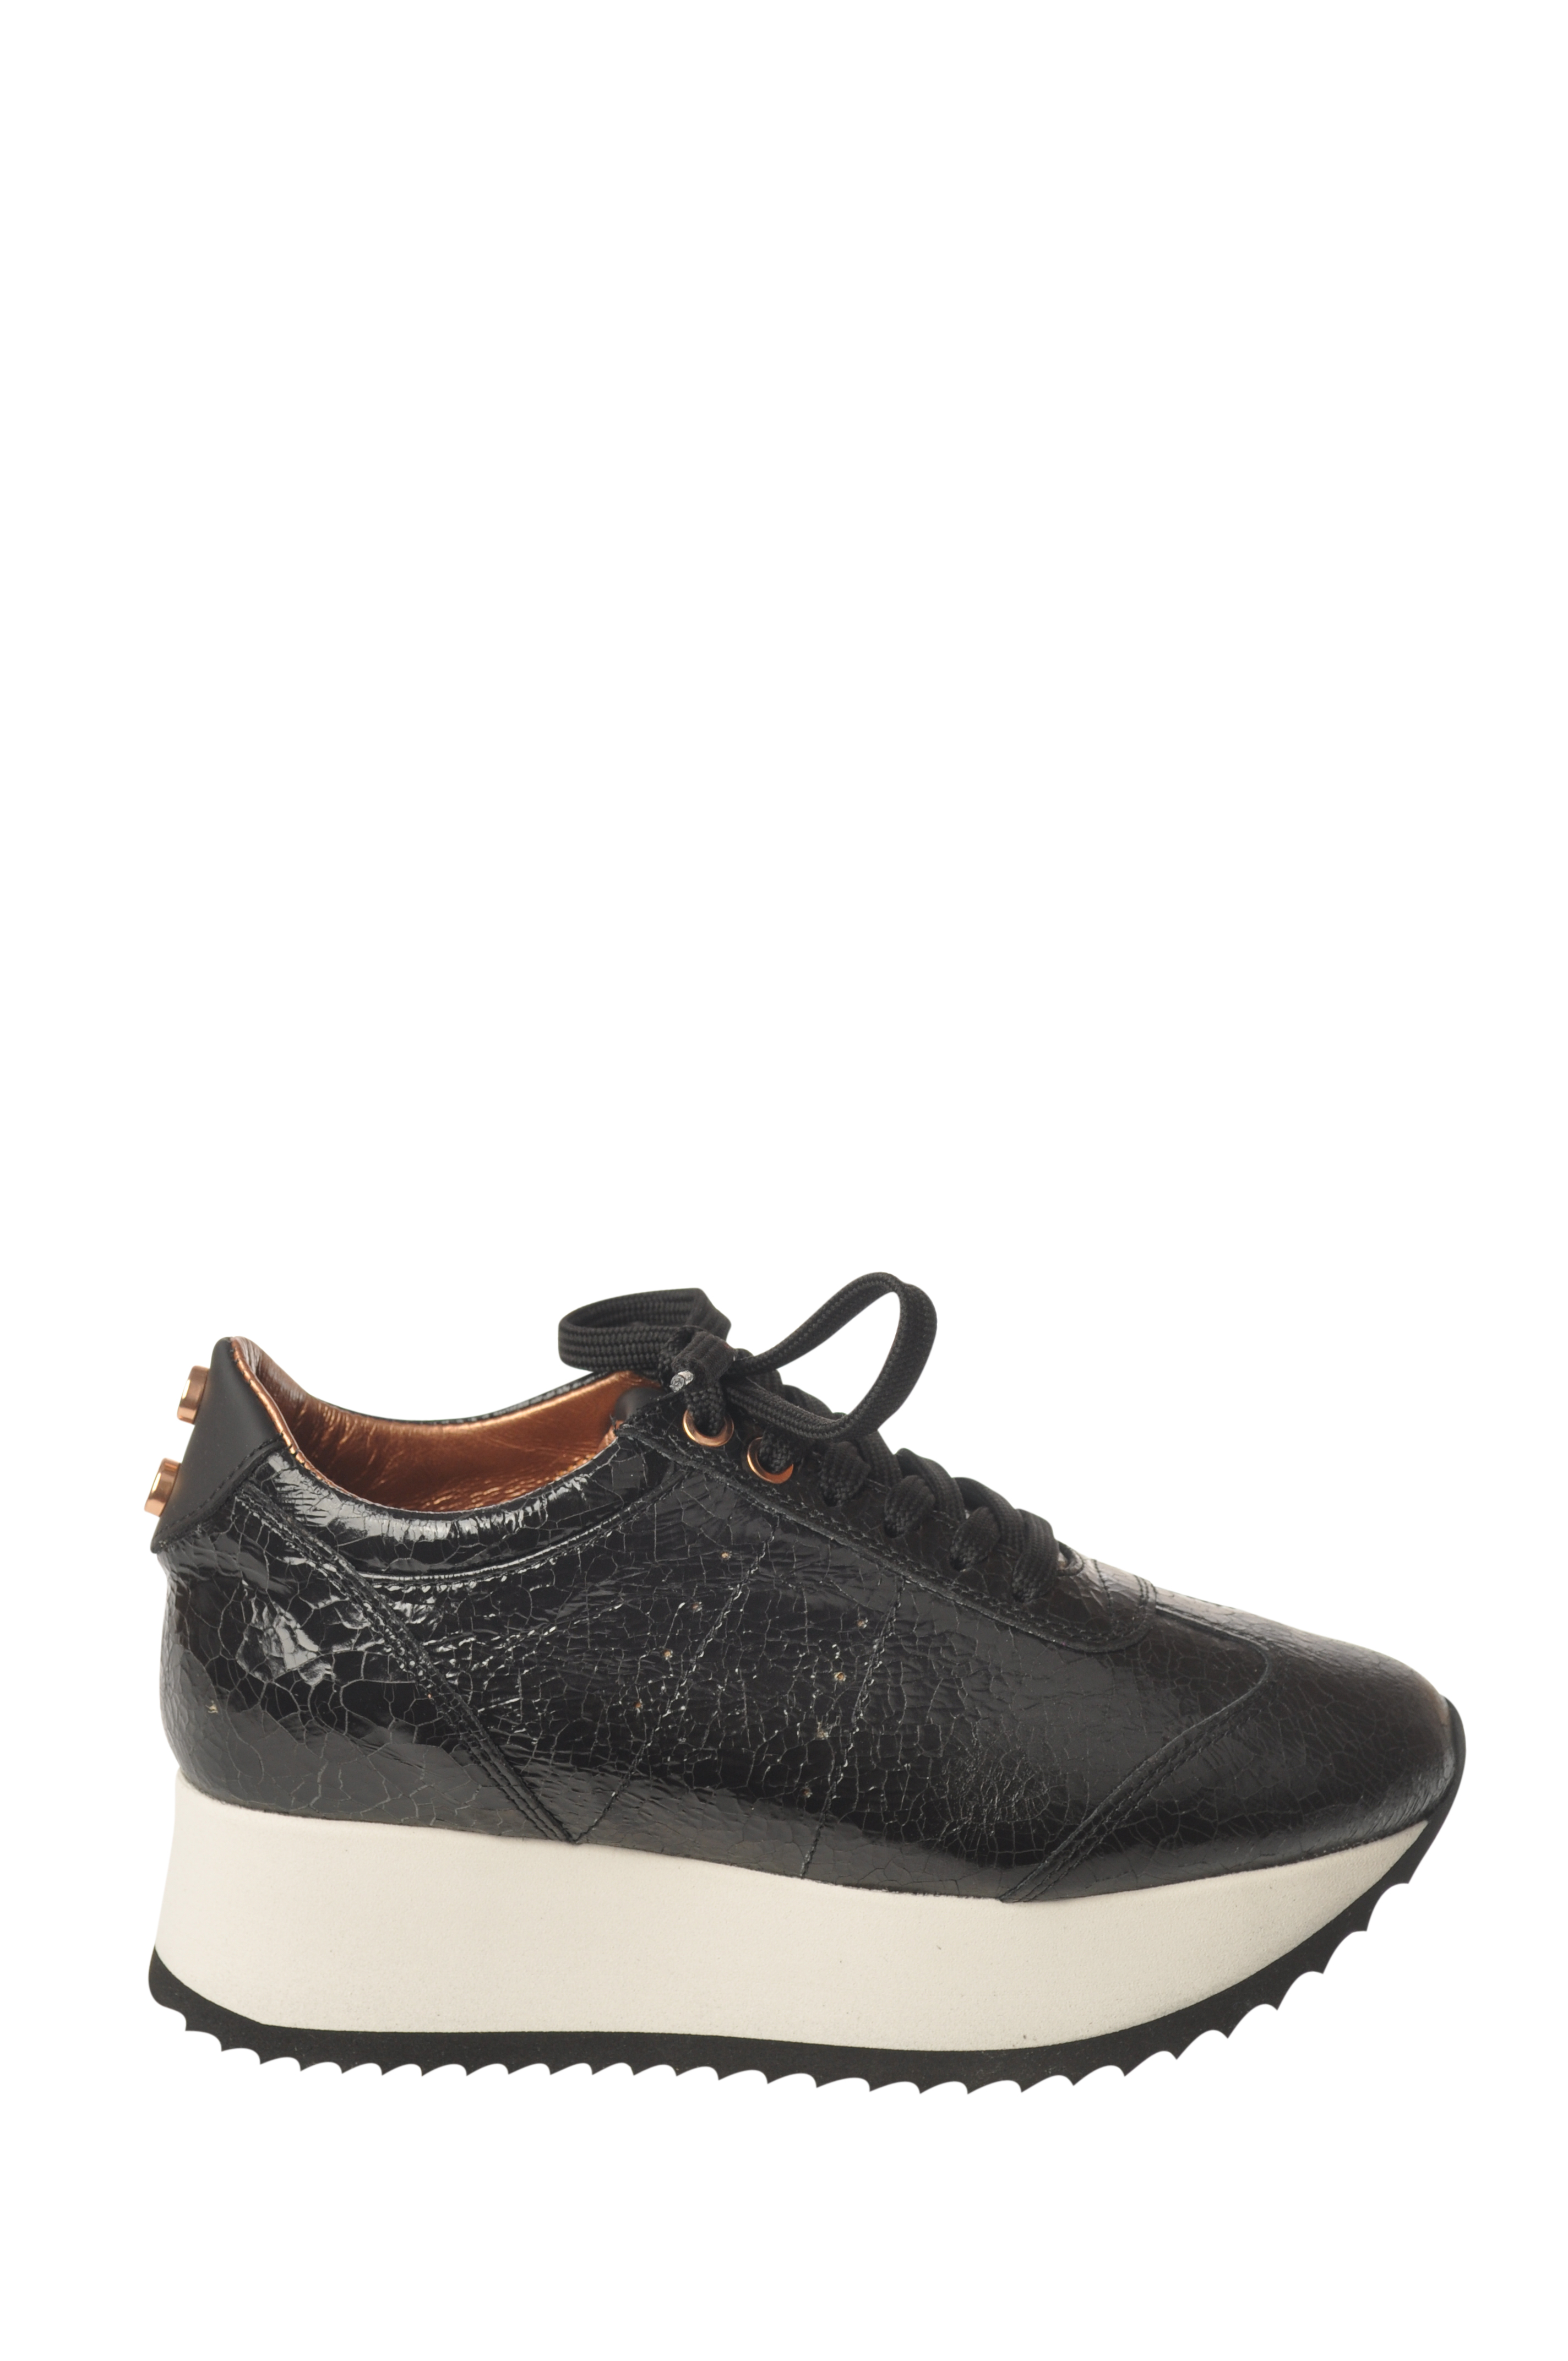 Alexander Smith - scarpe-scarpe da ginnastica low - Woman - nero - 5786810C191801